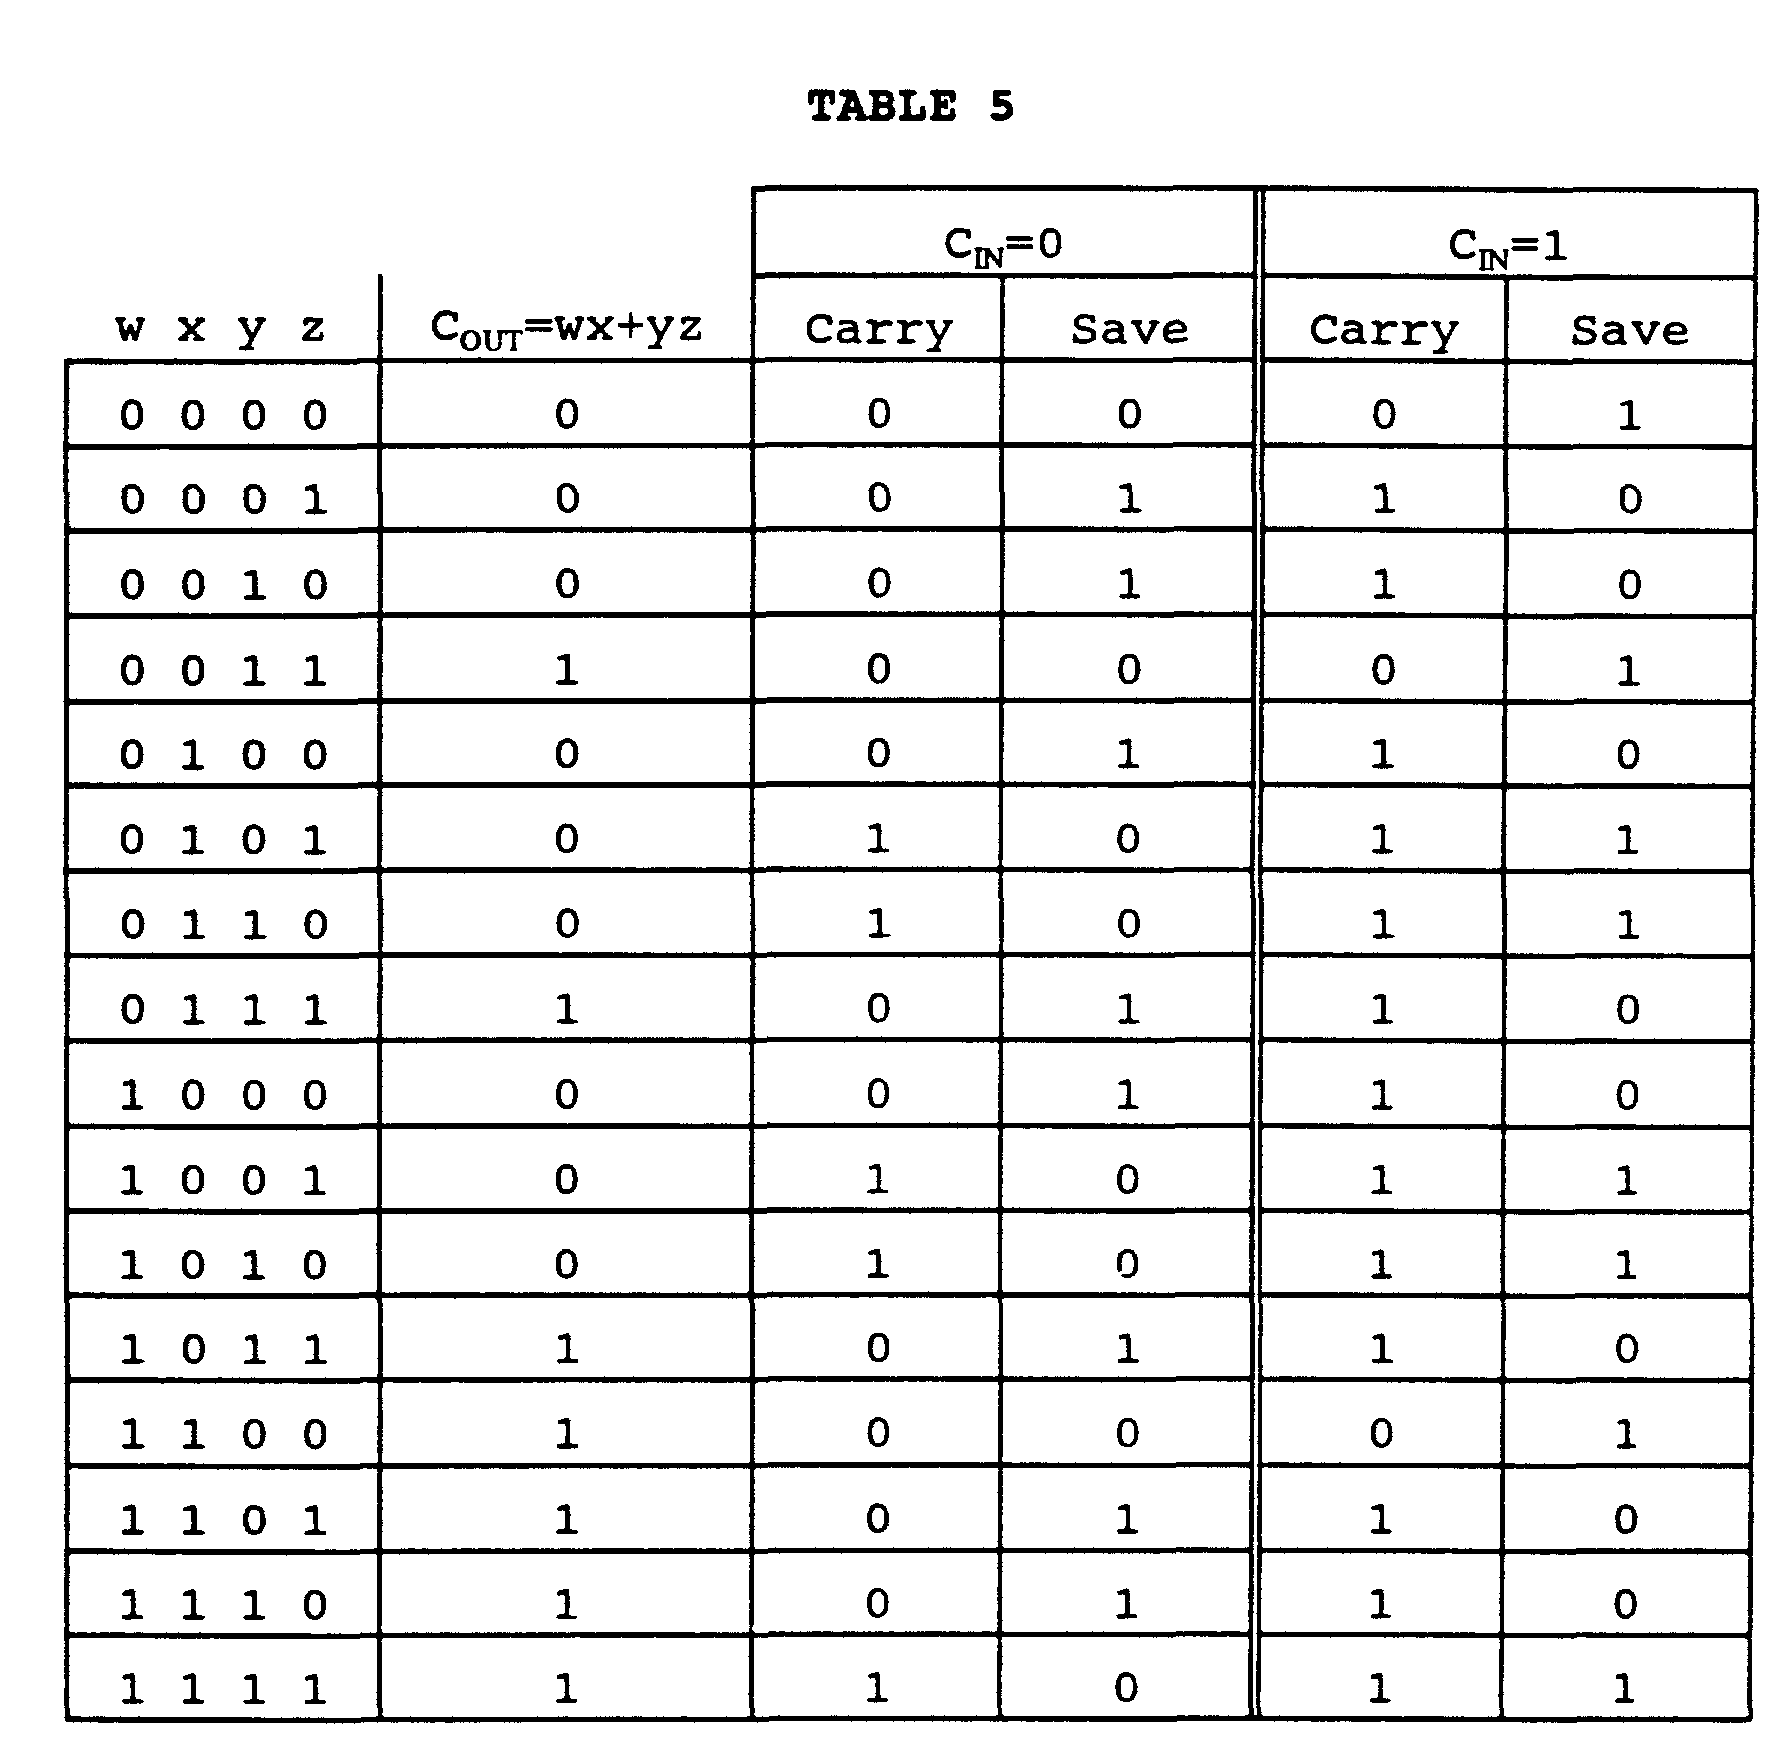 full adder truth table and circuit diagram - Circuit and ...